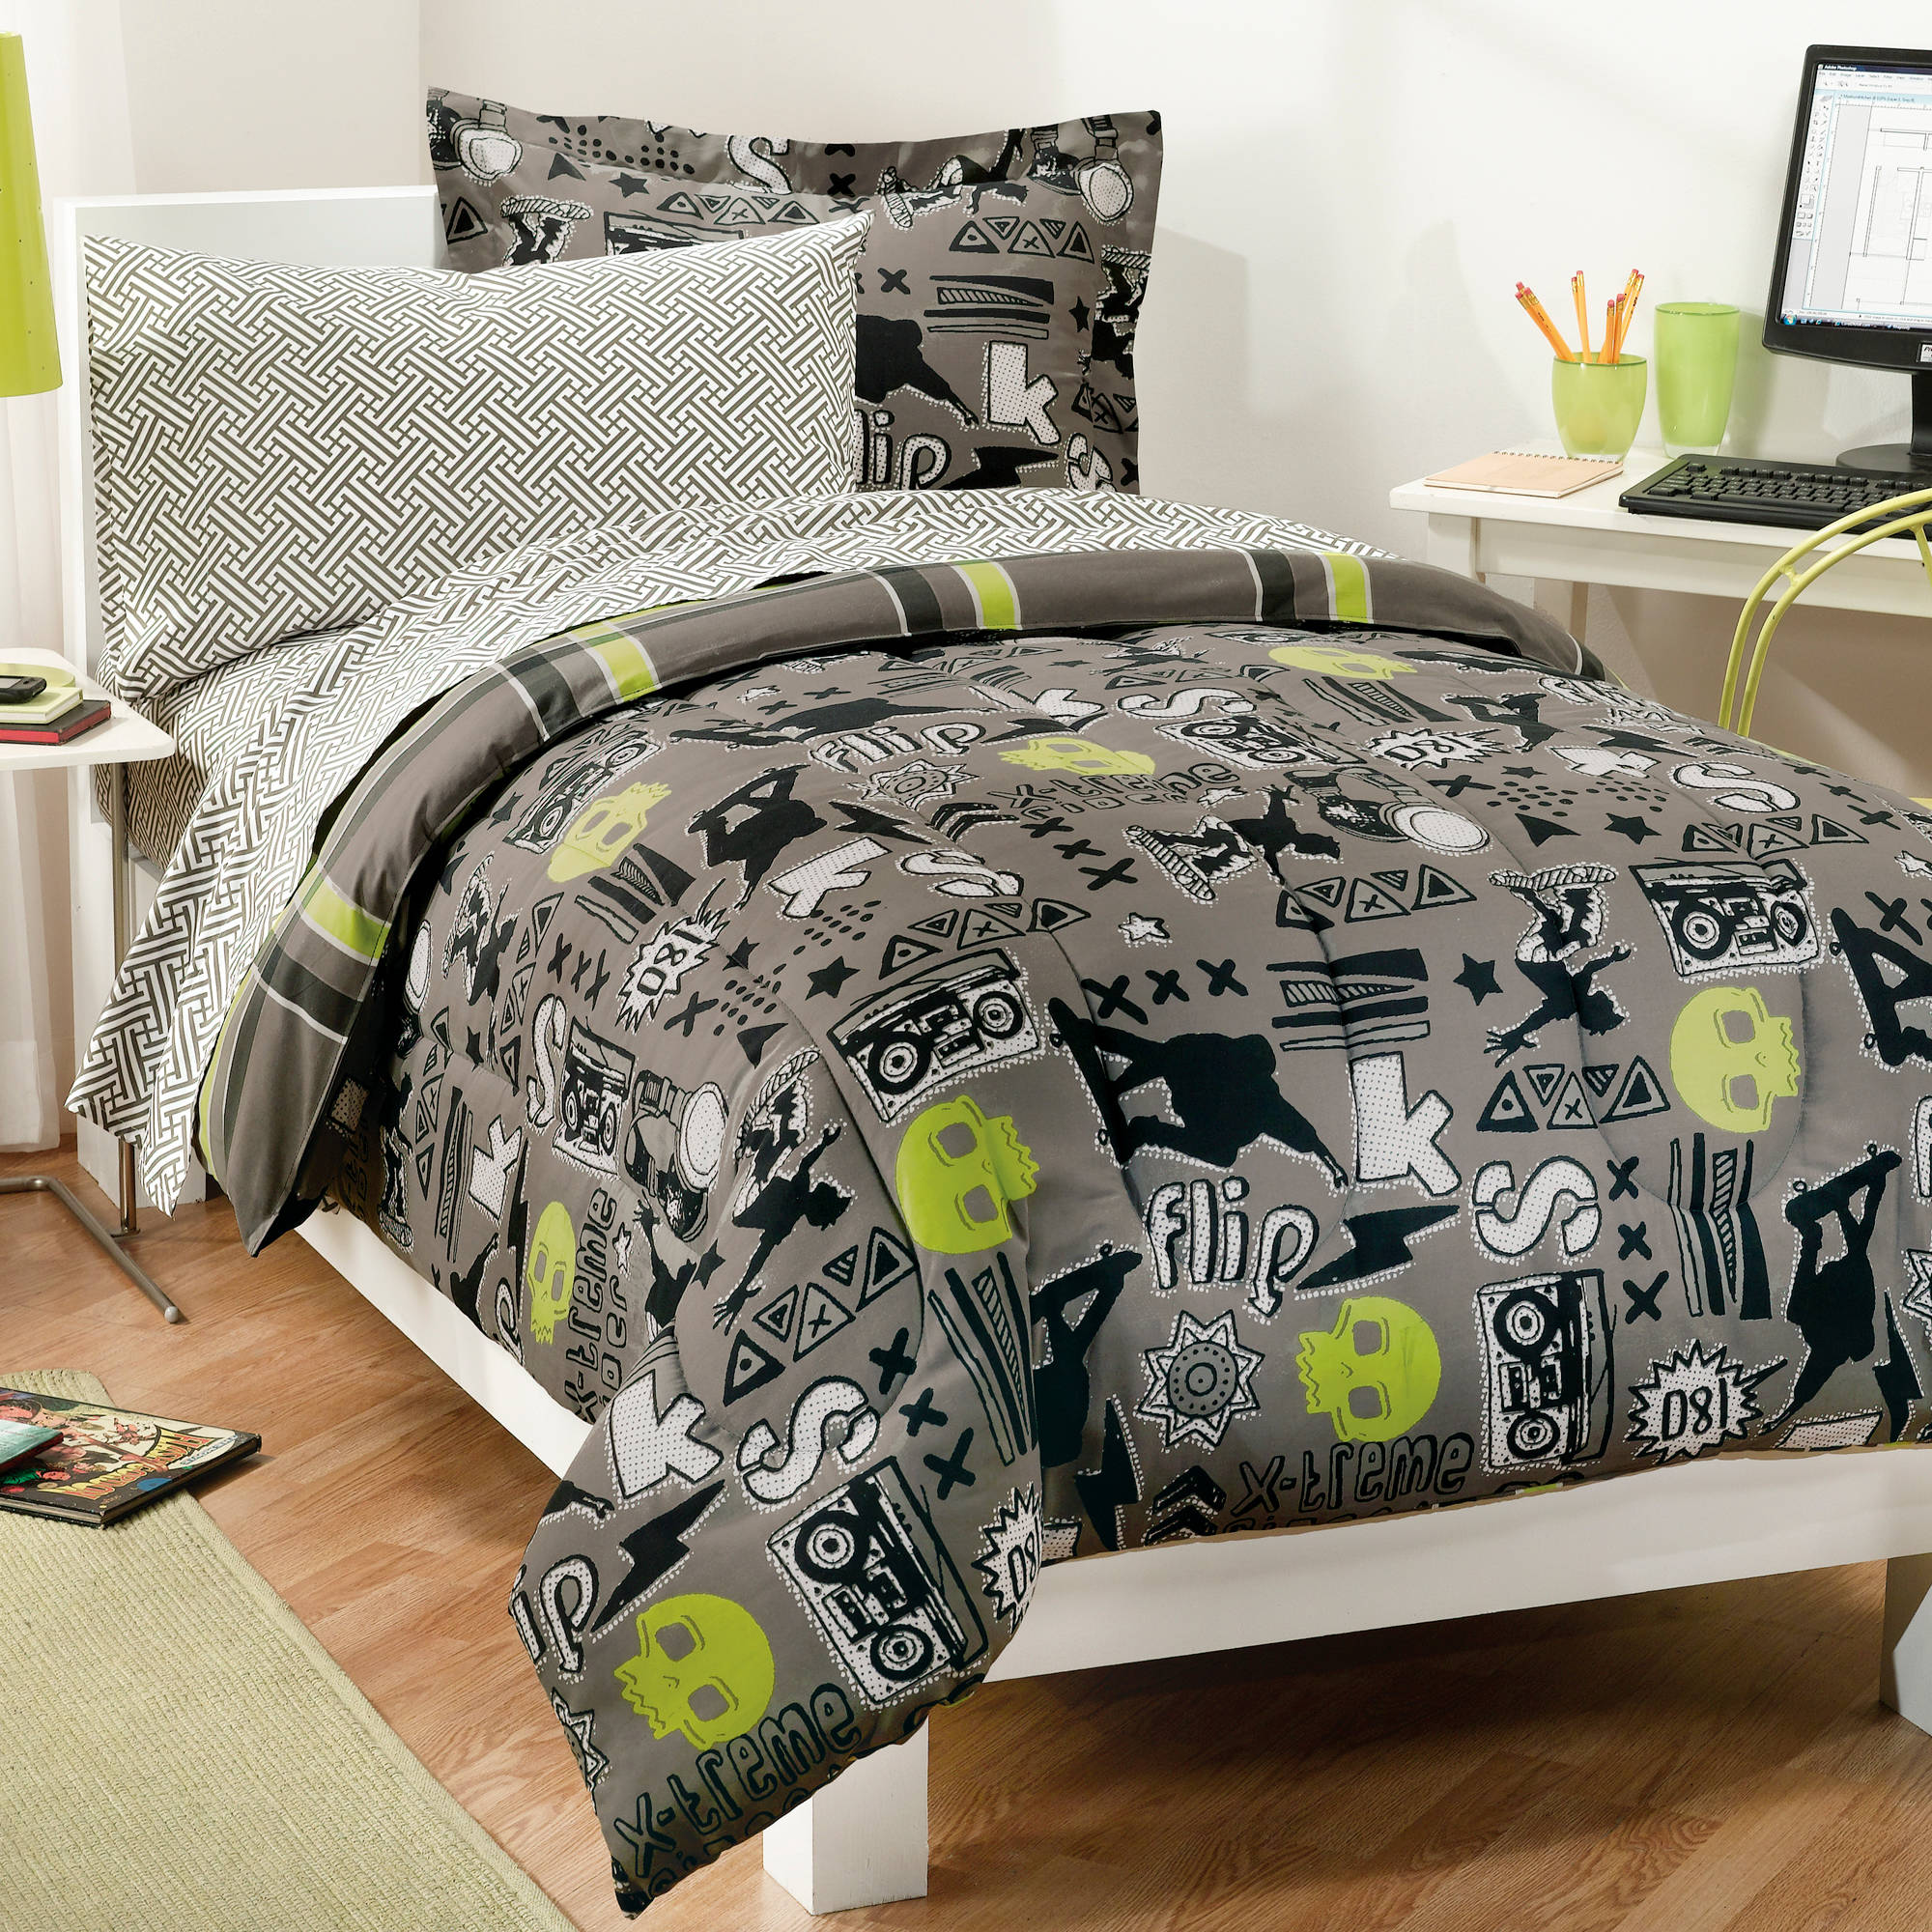 My Room X-Factor Bed in a Bag, Black